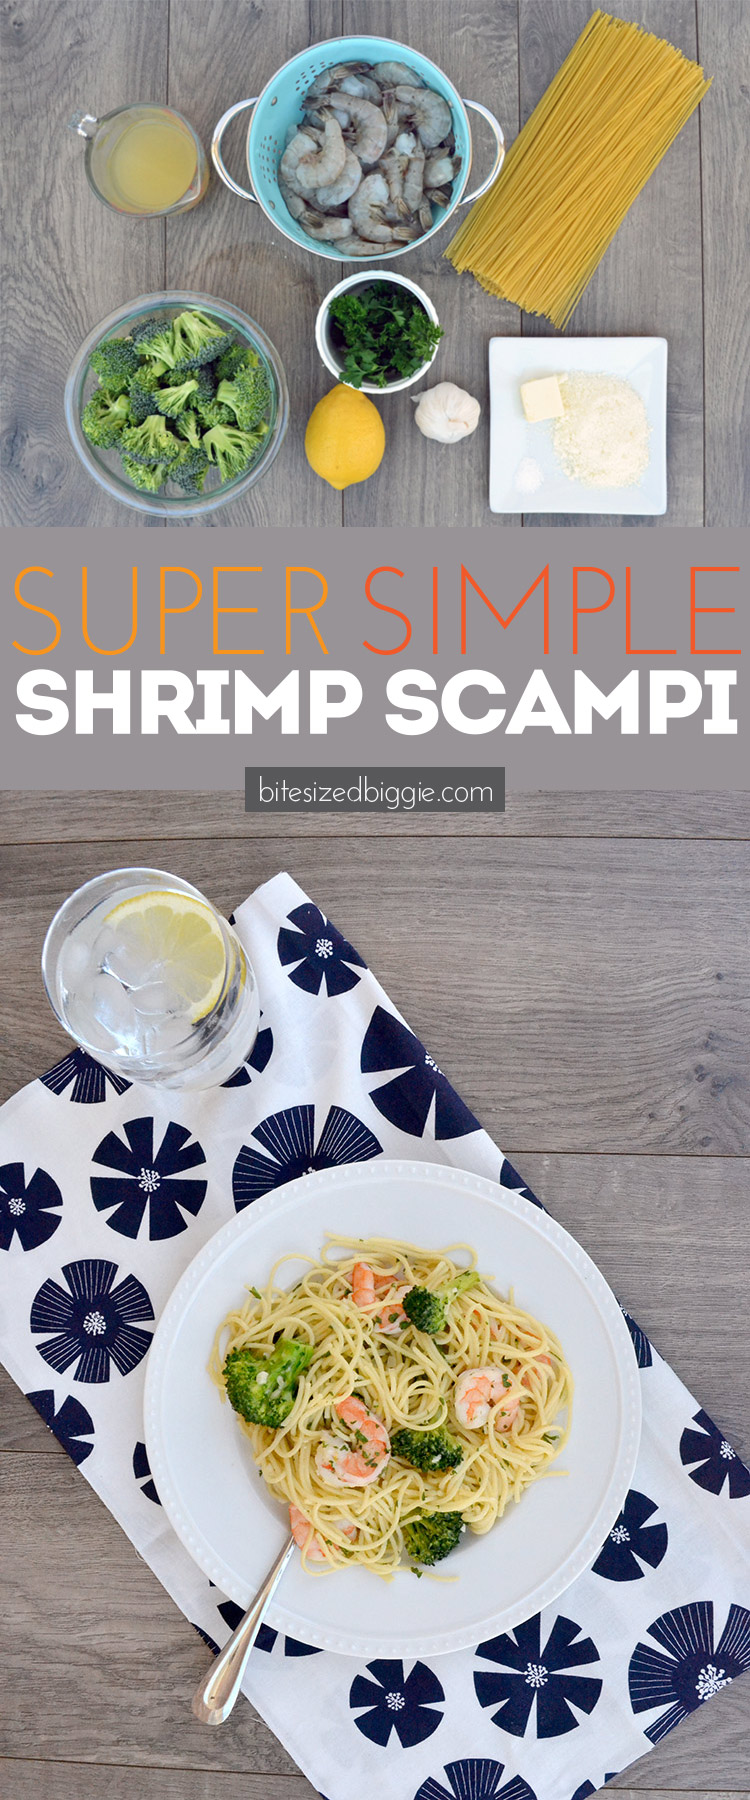 Super simple shrimp scampi recipe - will become a go-to weeknight AND weekend meal!